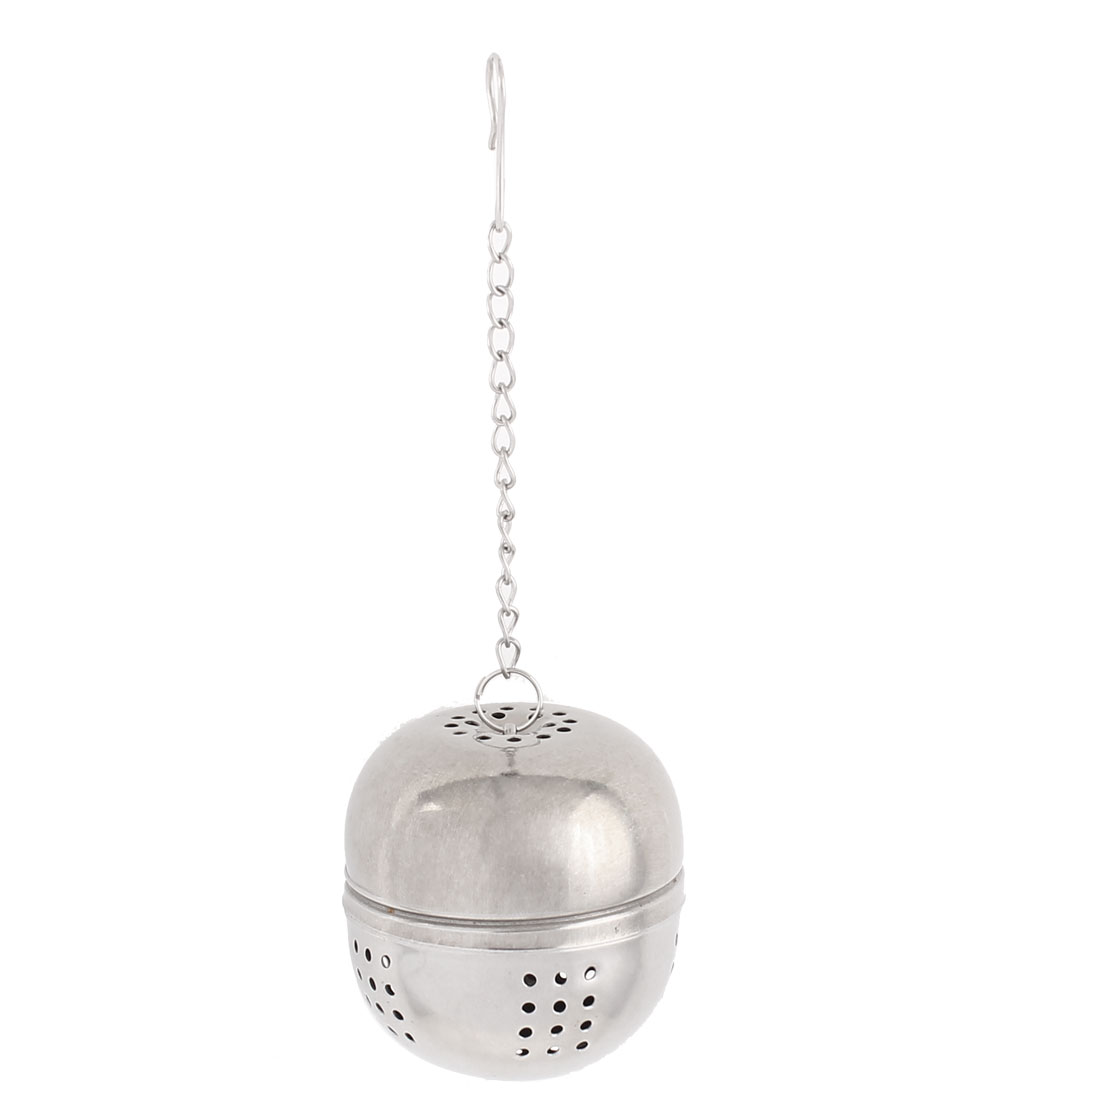 Kitchen 45mm Dia Stainless Steel Ball Strainer Tea Leaf Spice Perfume Infuser